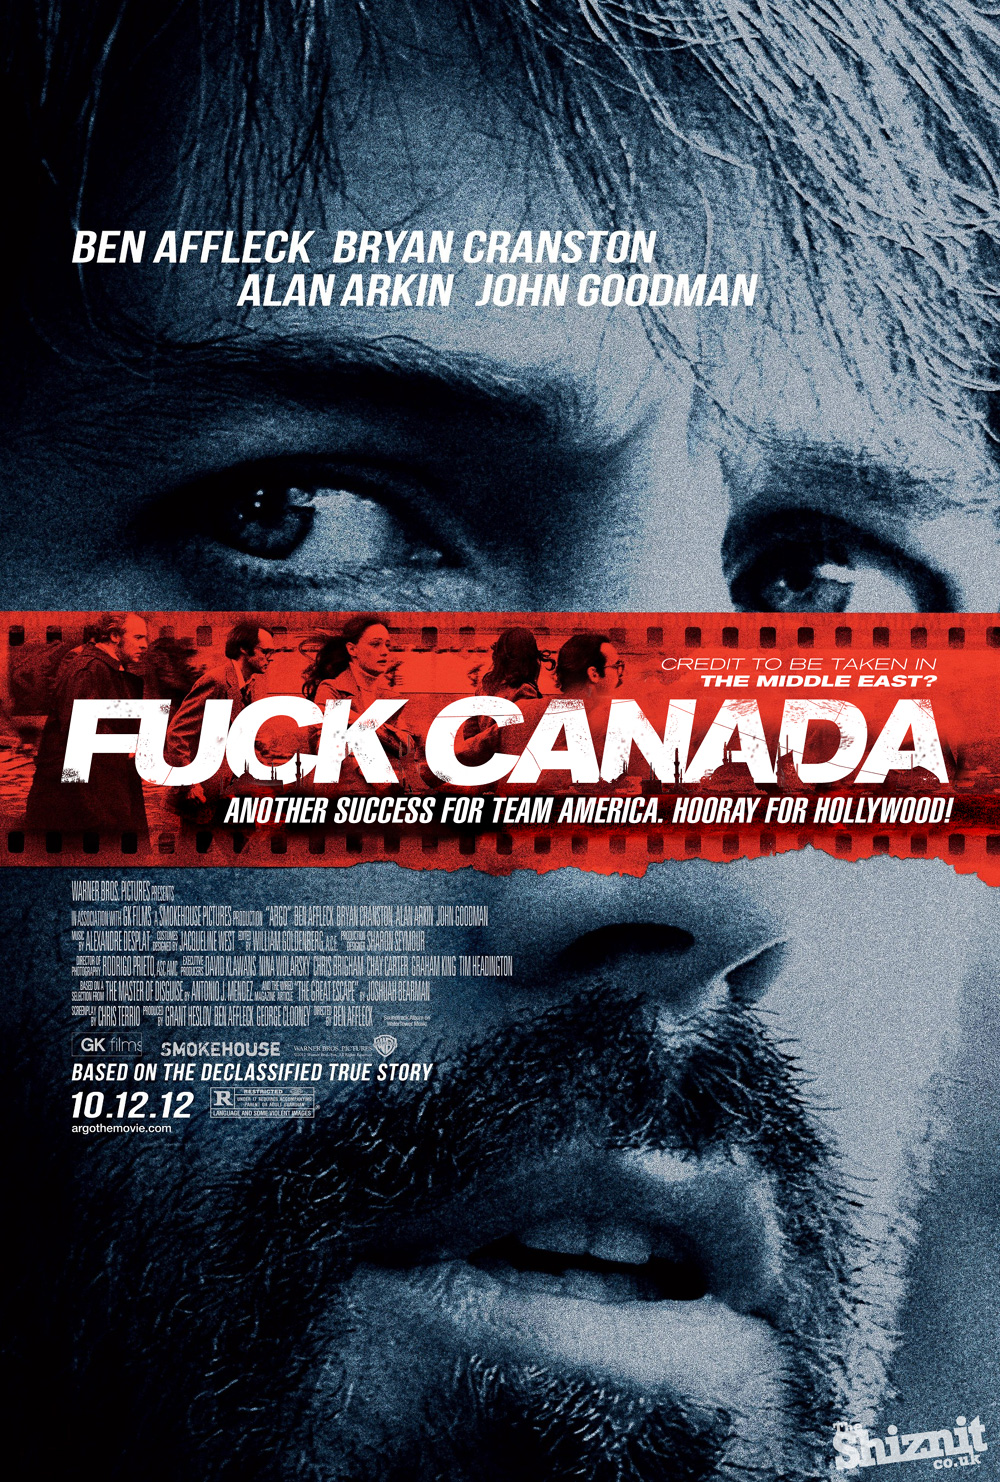 If 2013 S Oscar Nominated Movie Posters Told The Truth Movie Feature Theshiznit Co Uk